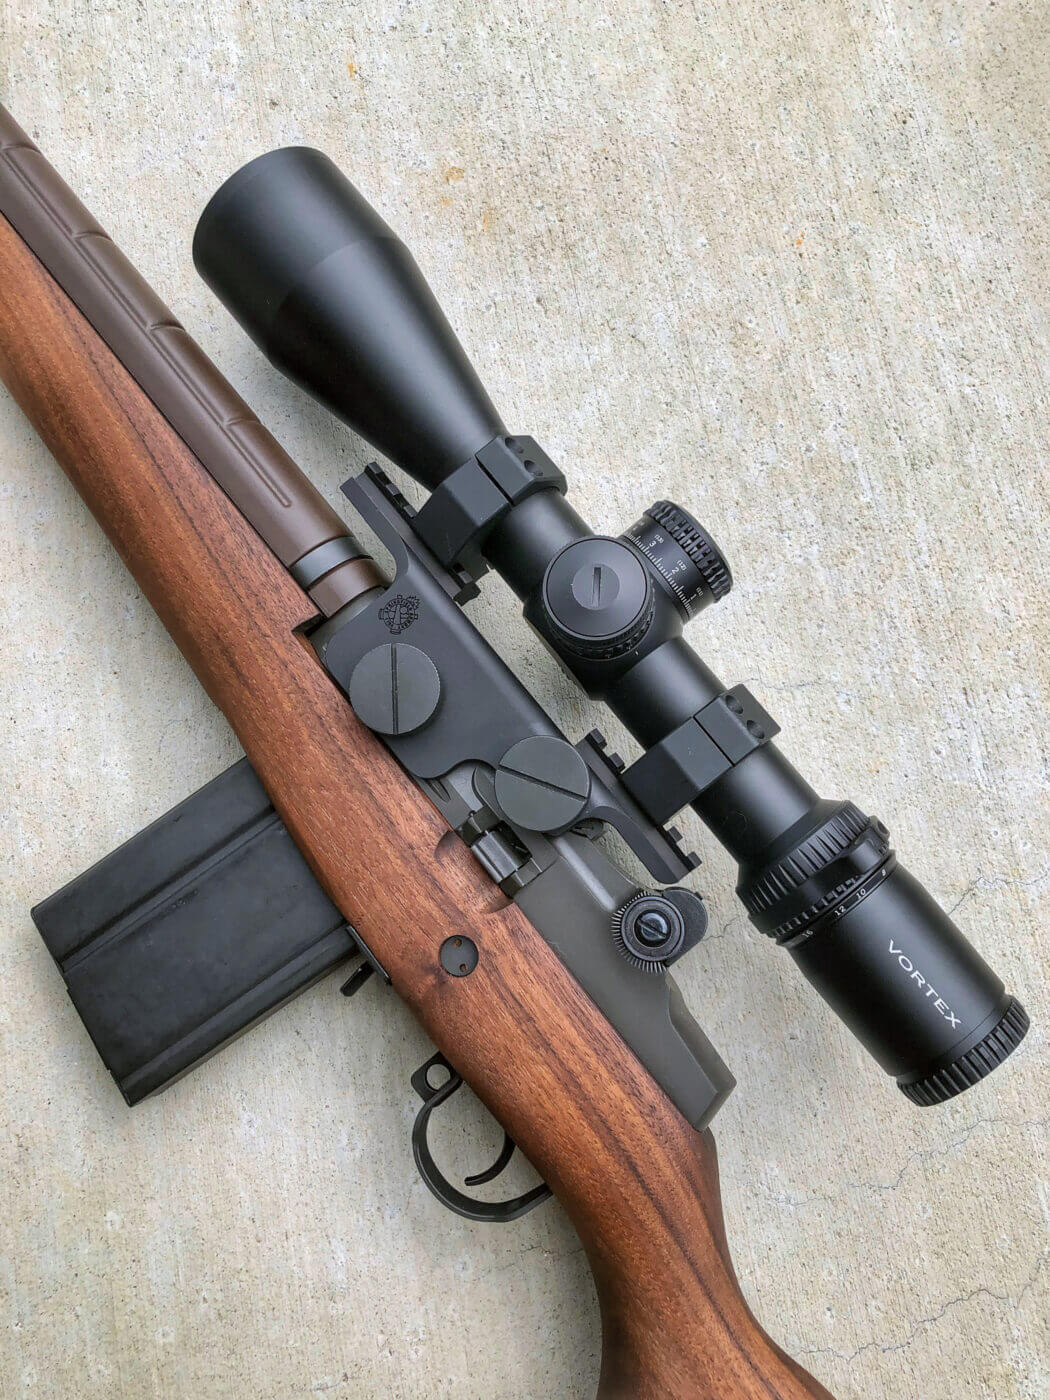 Mounting a scope to the M1A Loaded rifle